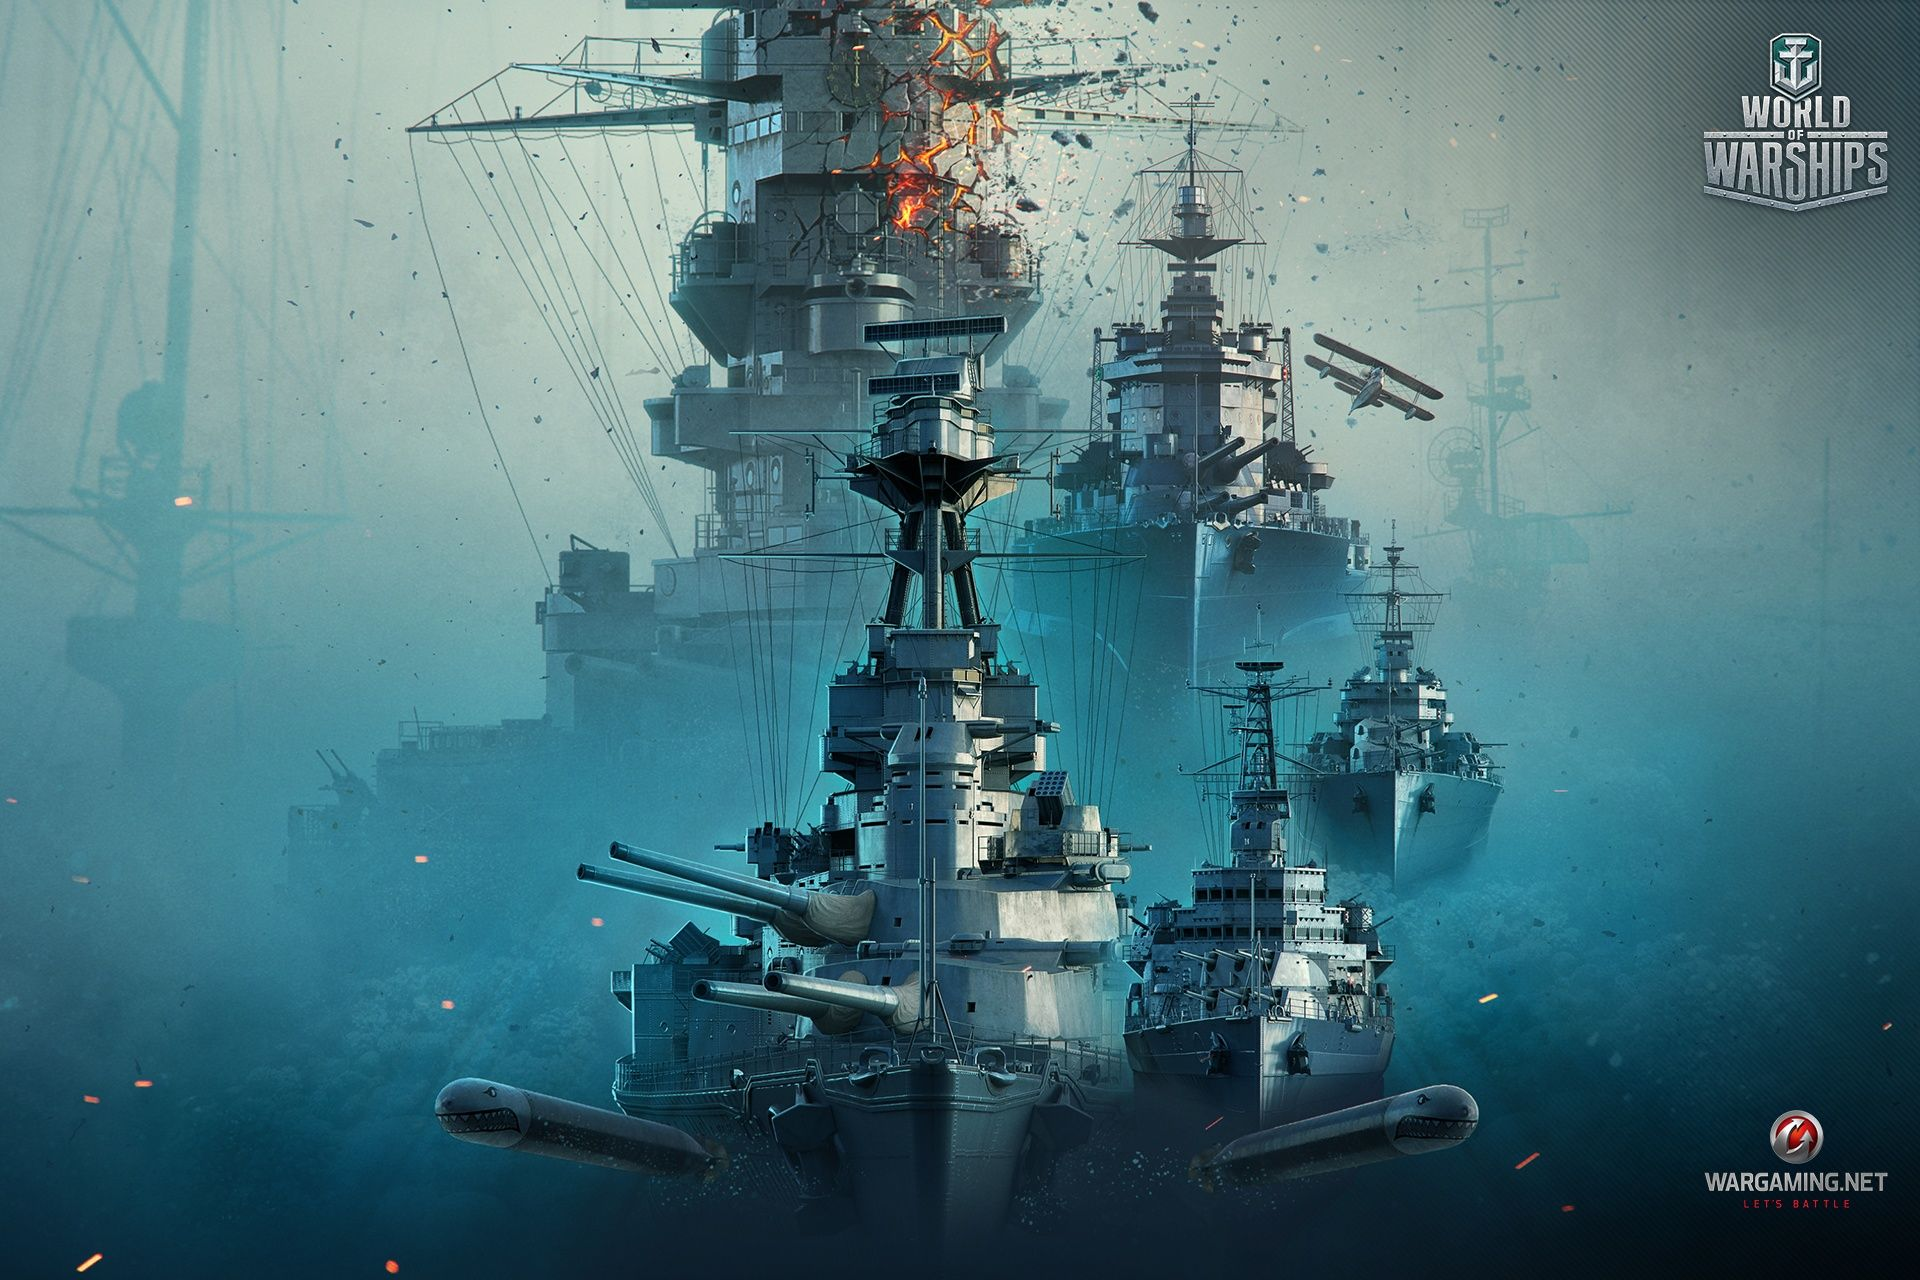 Warships Wallpaper 14 1920 X 1280 Stmed Net With Images